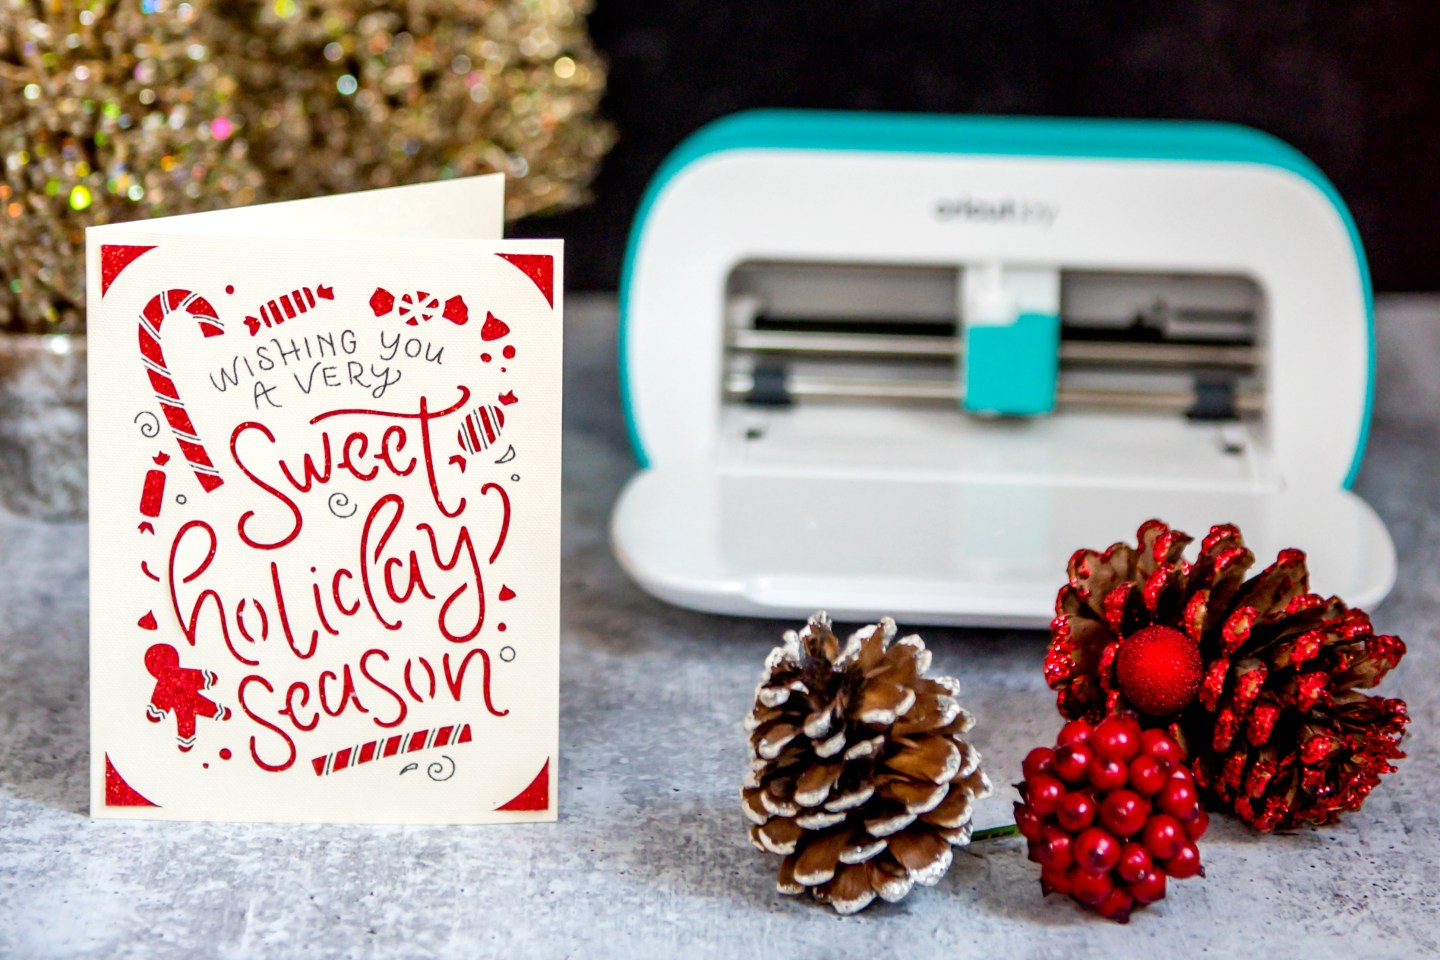 Cricut Joy Holiday Gift